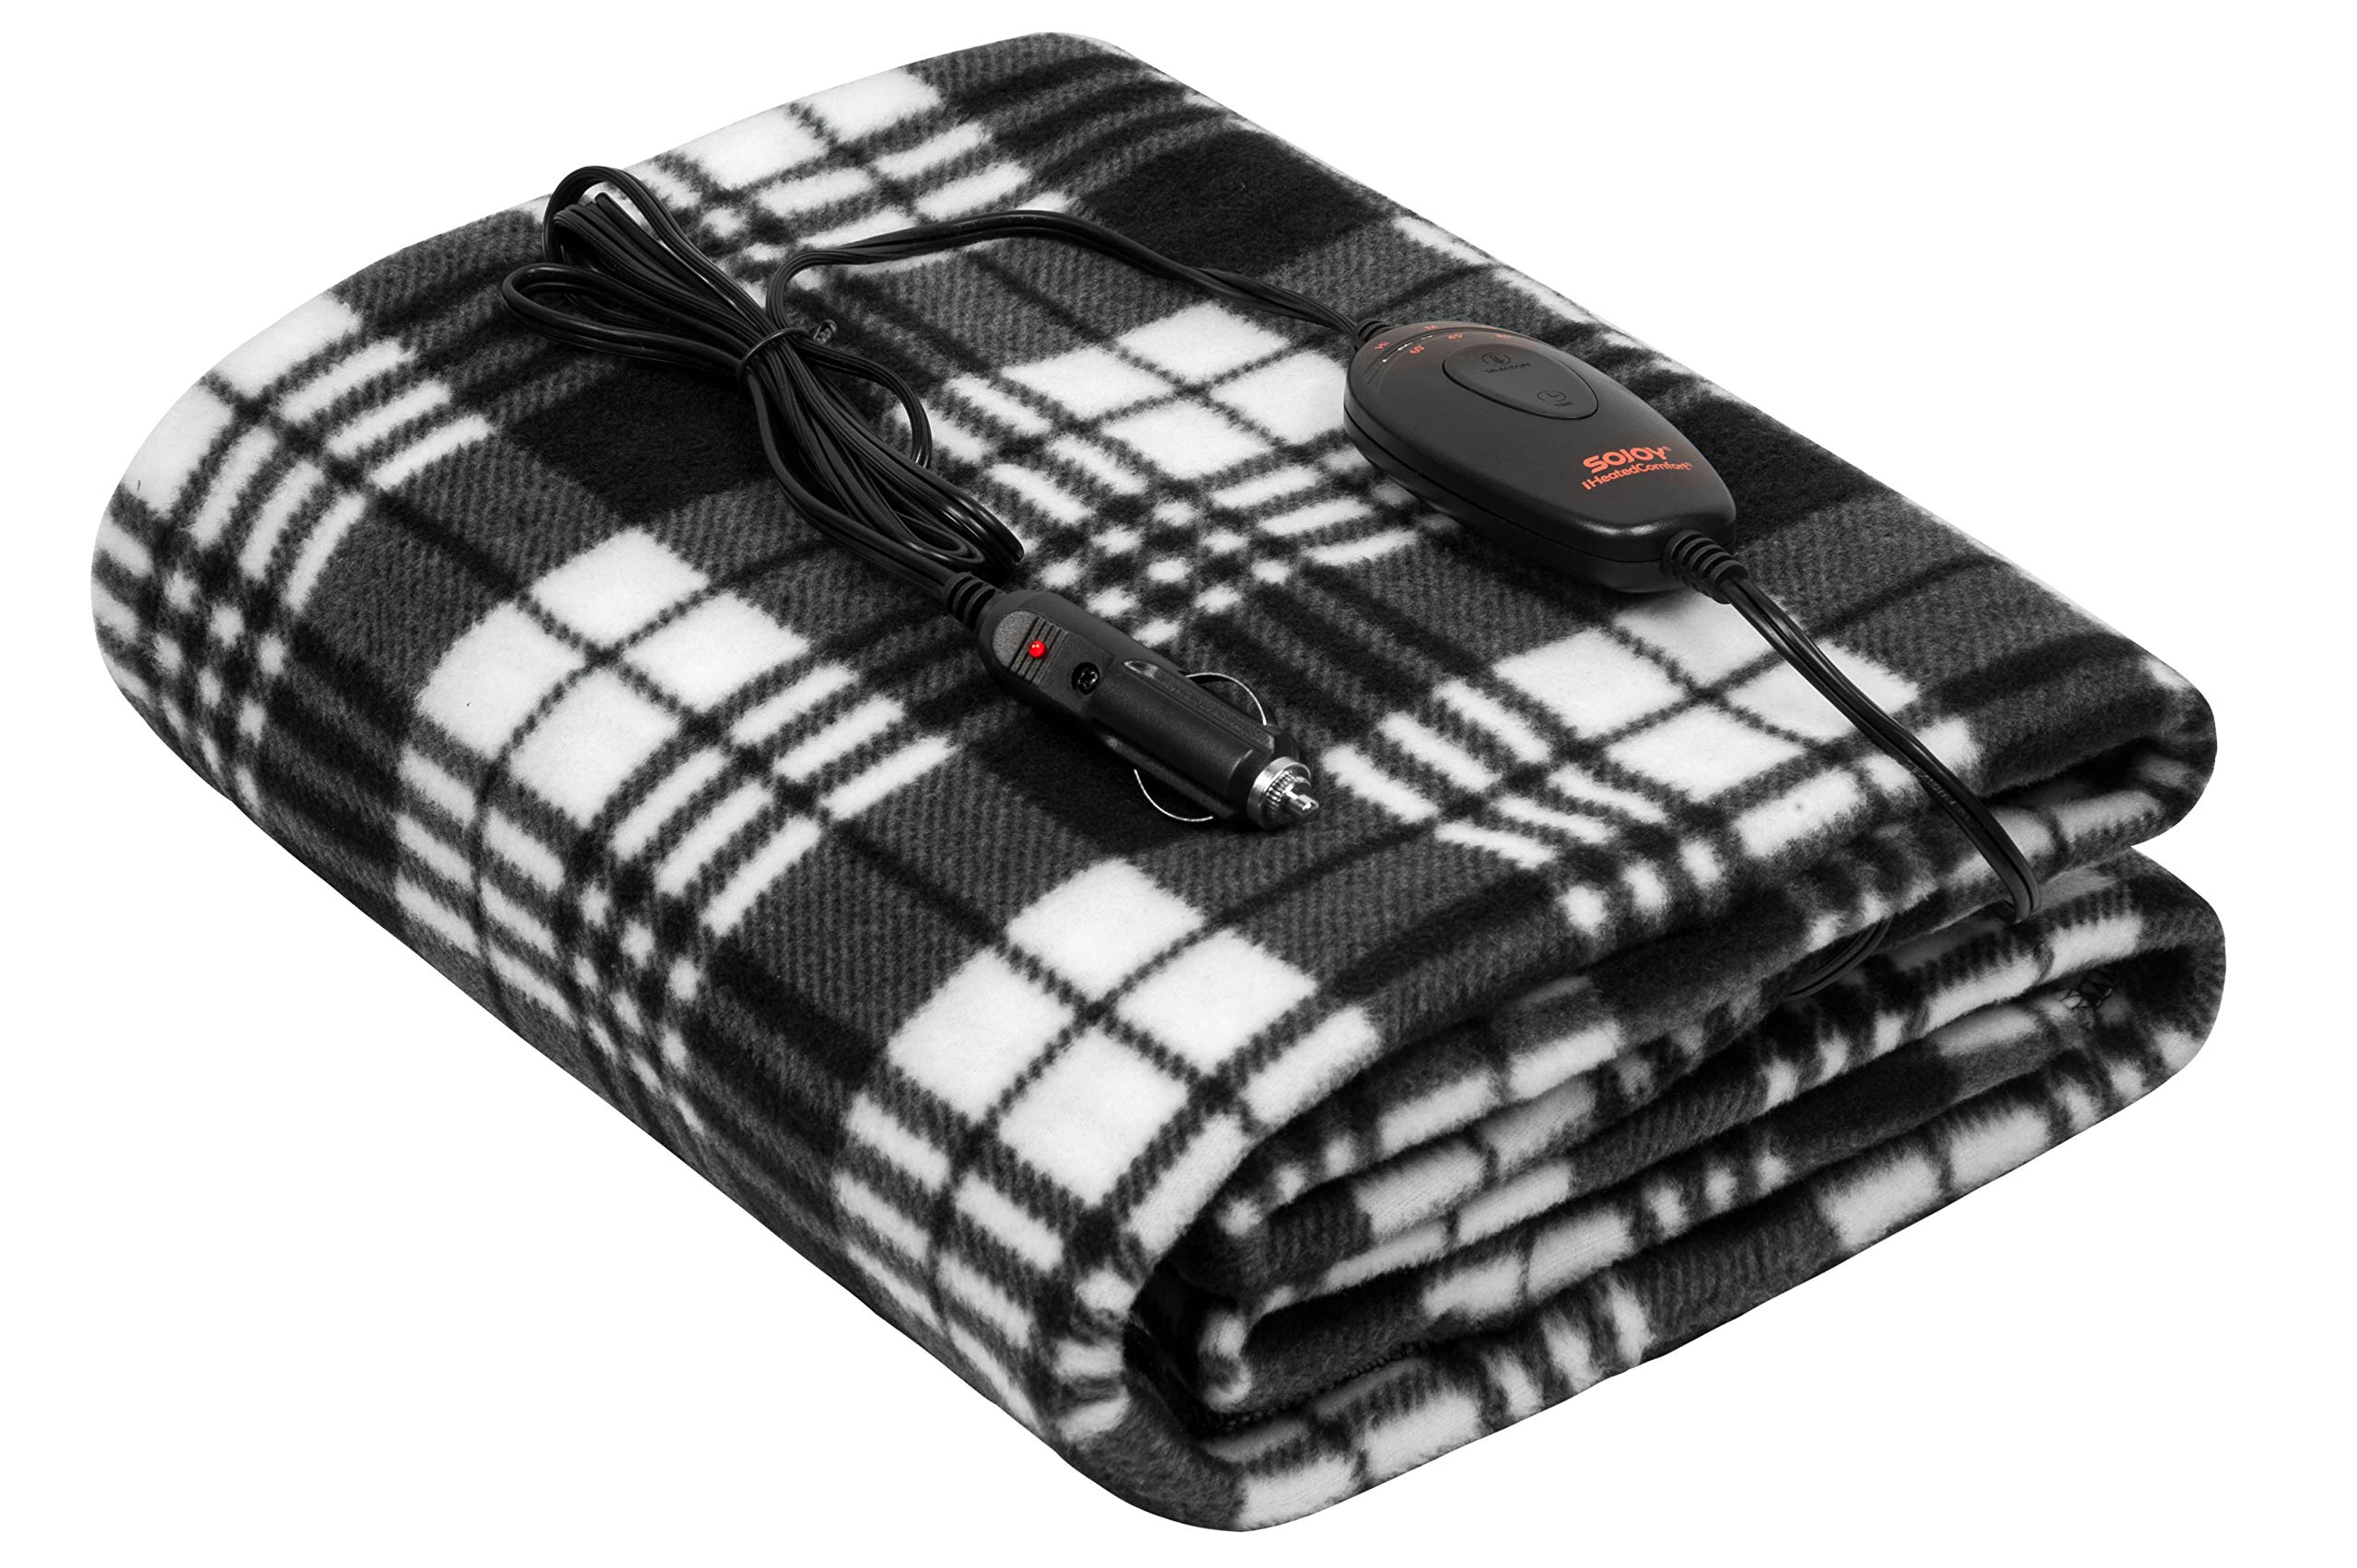 Sojoy 12V Heated Smart Multifunctional Travel Electric Blanket for Car, Truck, Boats or RV with High/Low Temp Control (60''x 40'') (Checkered Black & White) by Sojoy